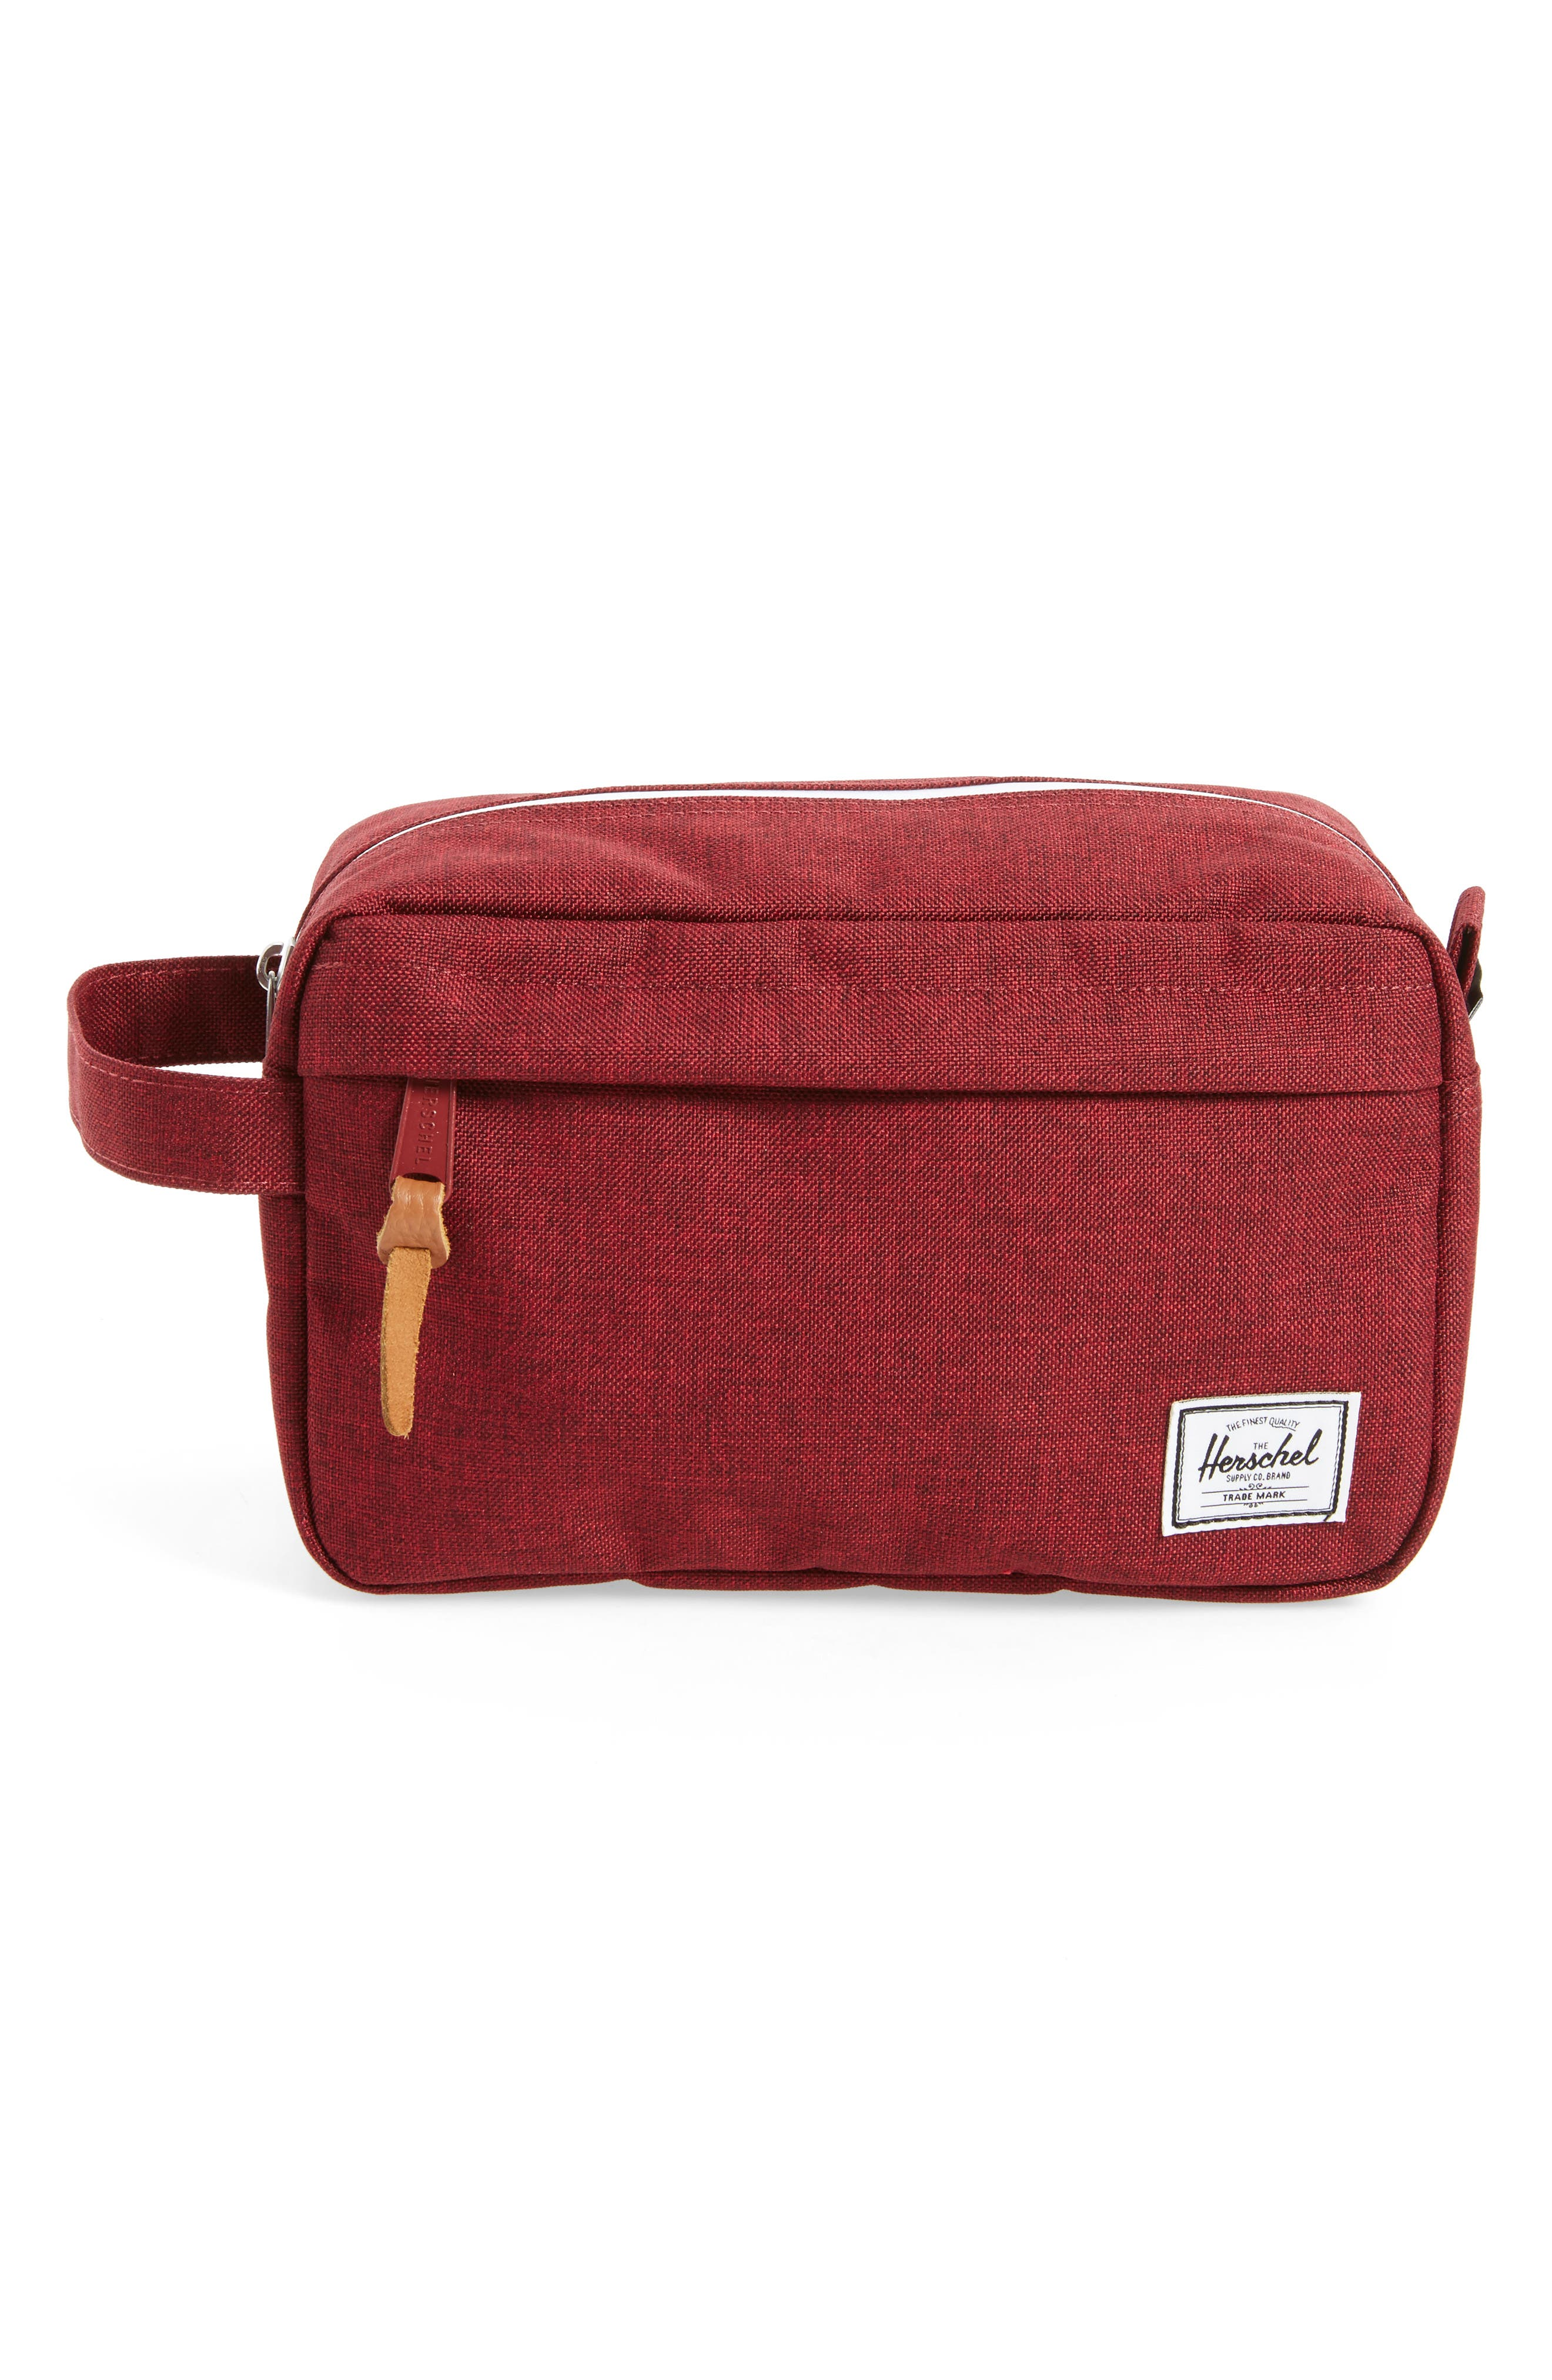 'Chapter' Travel Kit,                         Main,                         color, 644